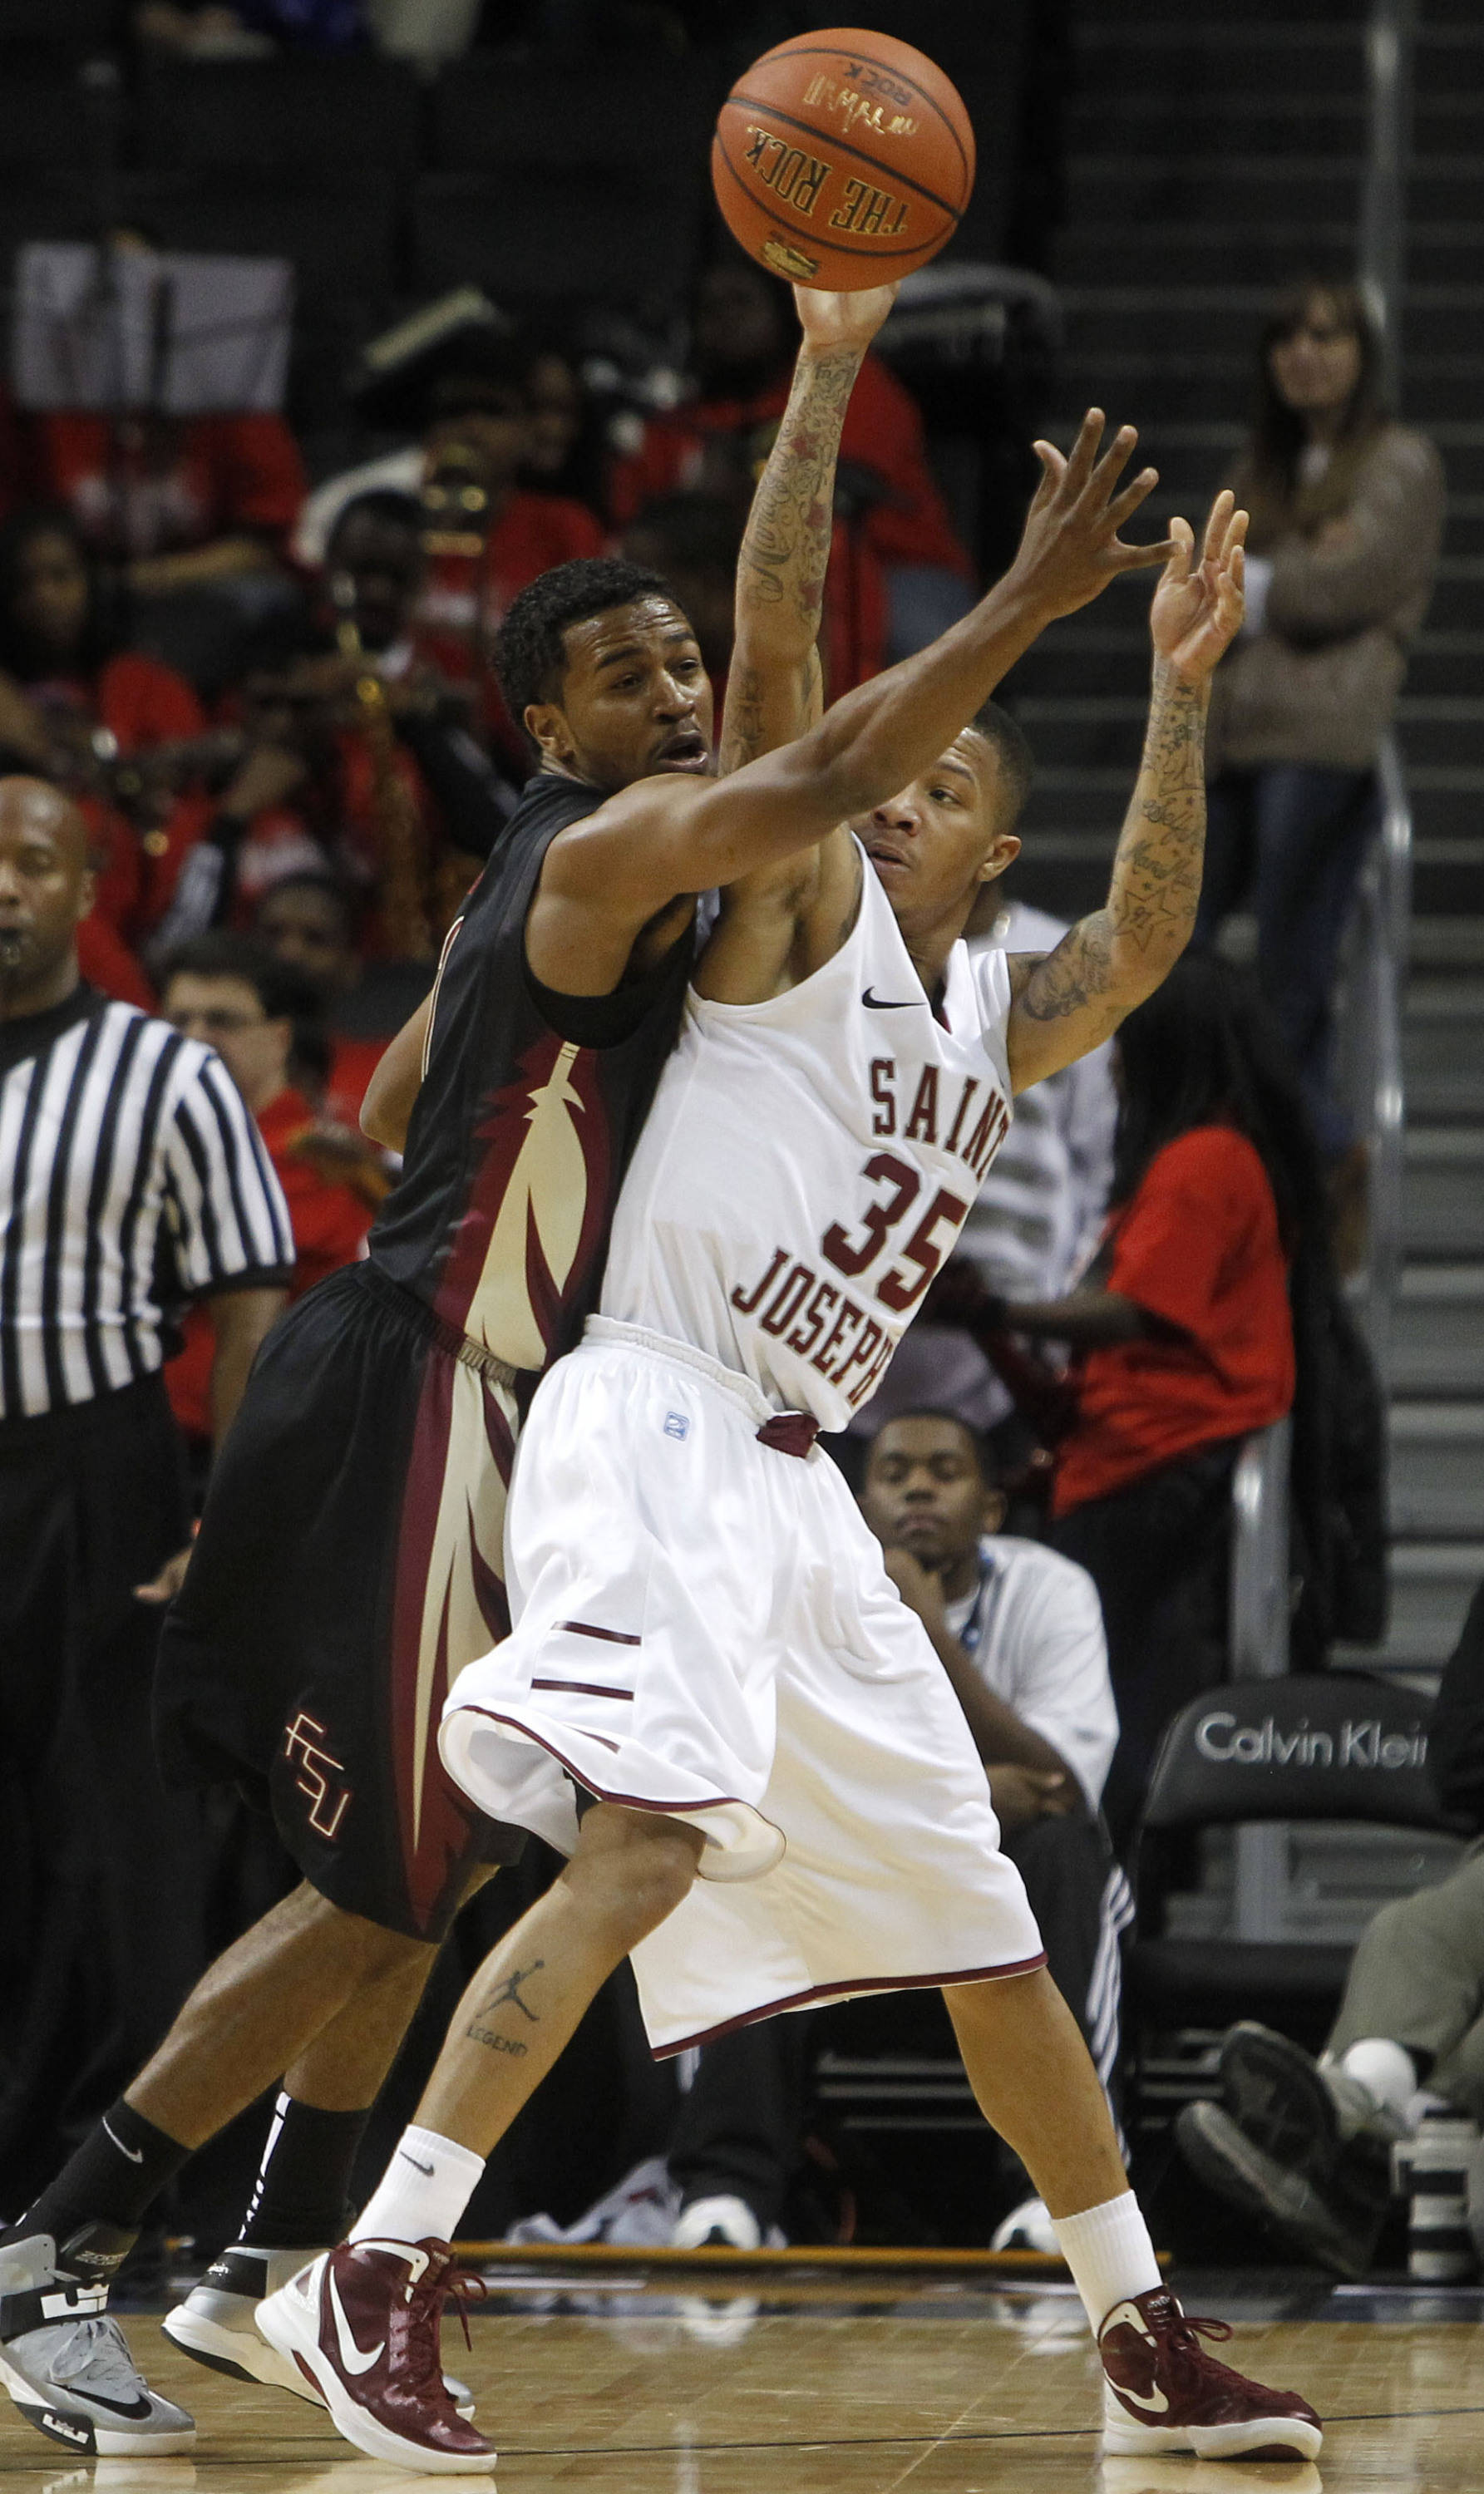 Saint Joseph's Carl Jones (35) looks to pass away from Florida State's Devon Bookert during the first half. (AP Photo/Jason DeCrow)